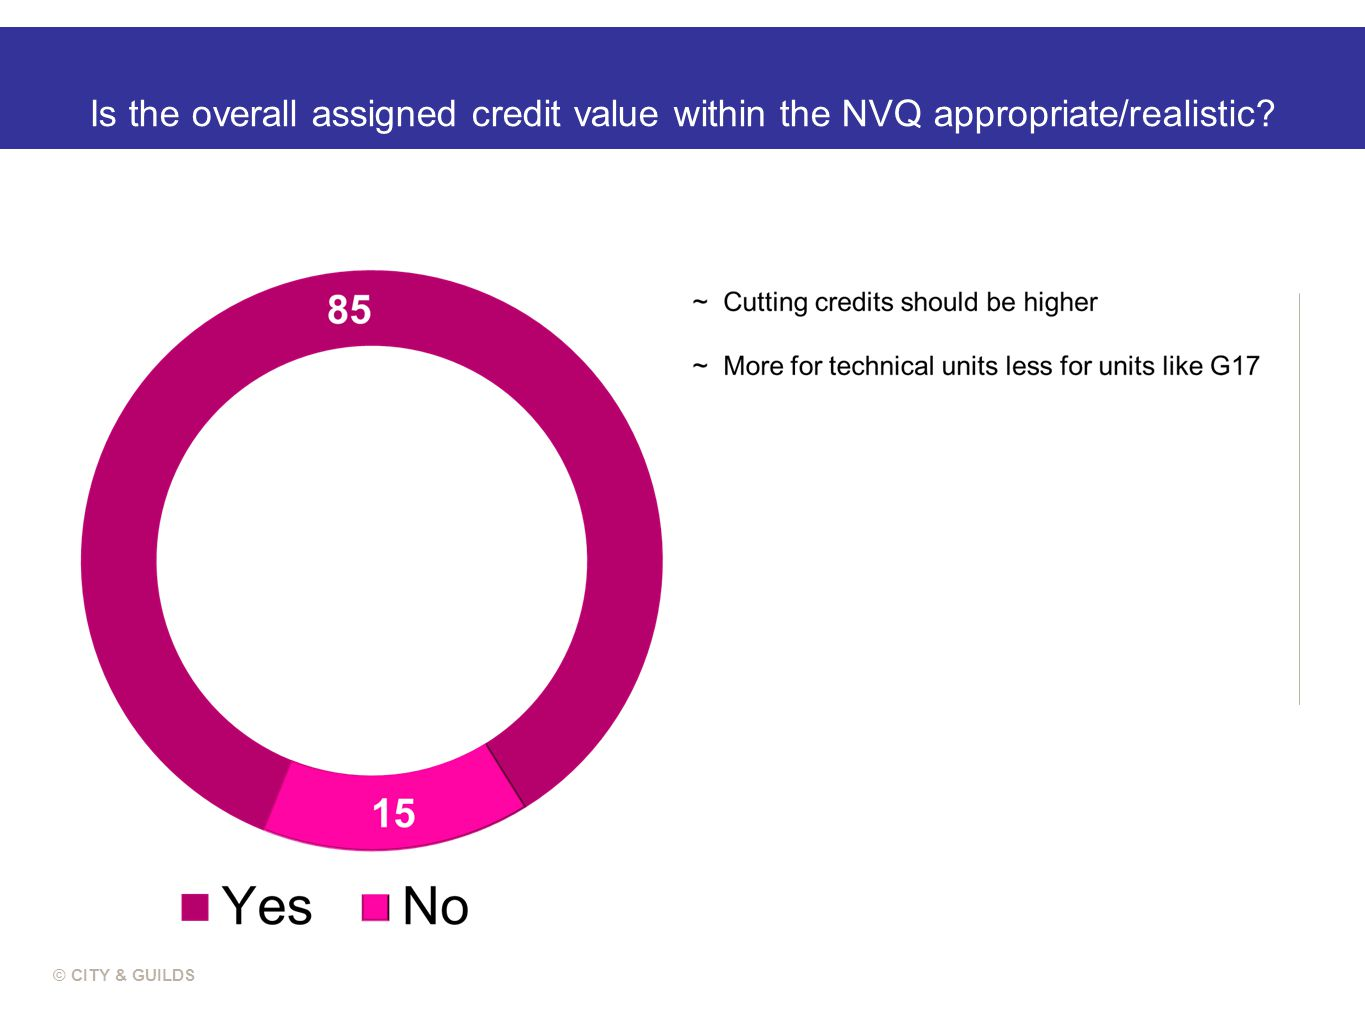 Is the overall assigned credit value within the NVQ appropriate/realistic © CITY & GUILDS